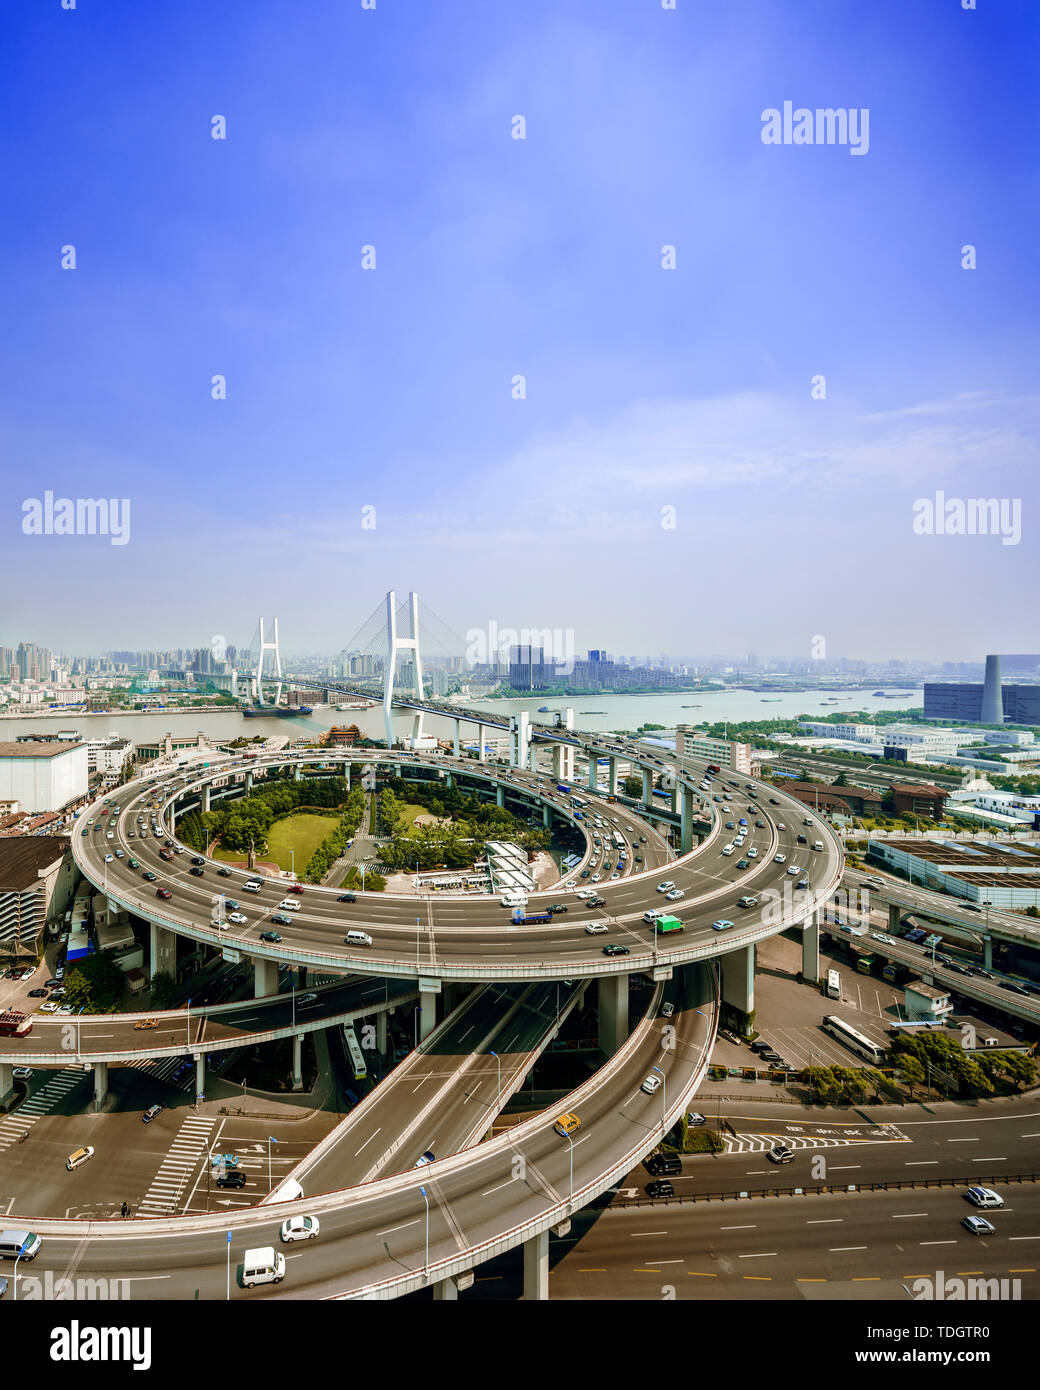 skyline and road intersection in shanghai - Stock Image